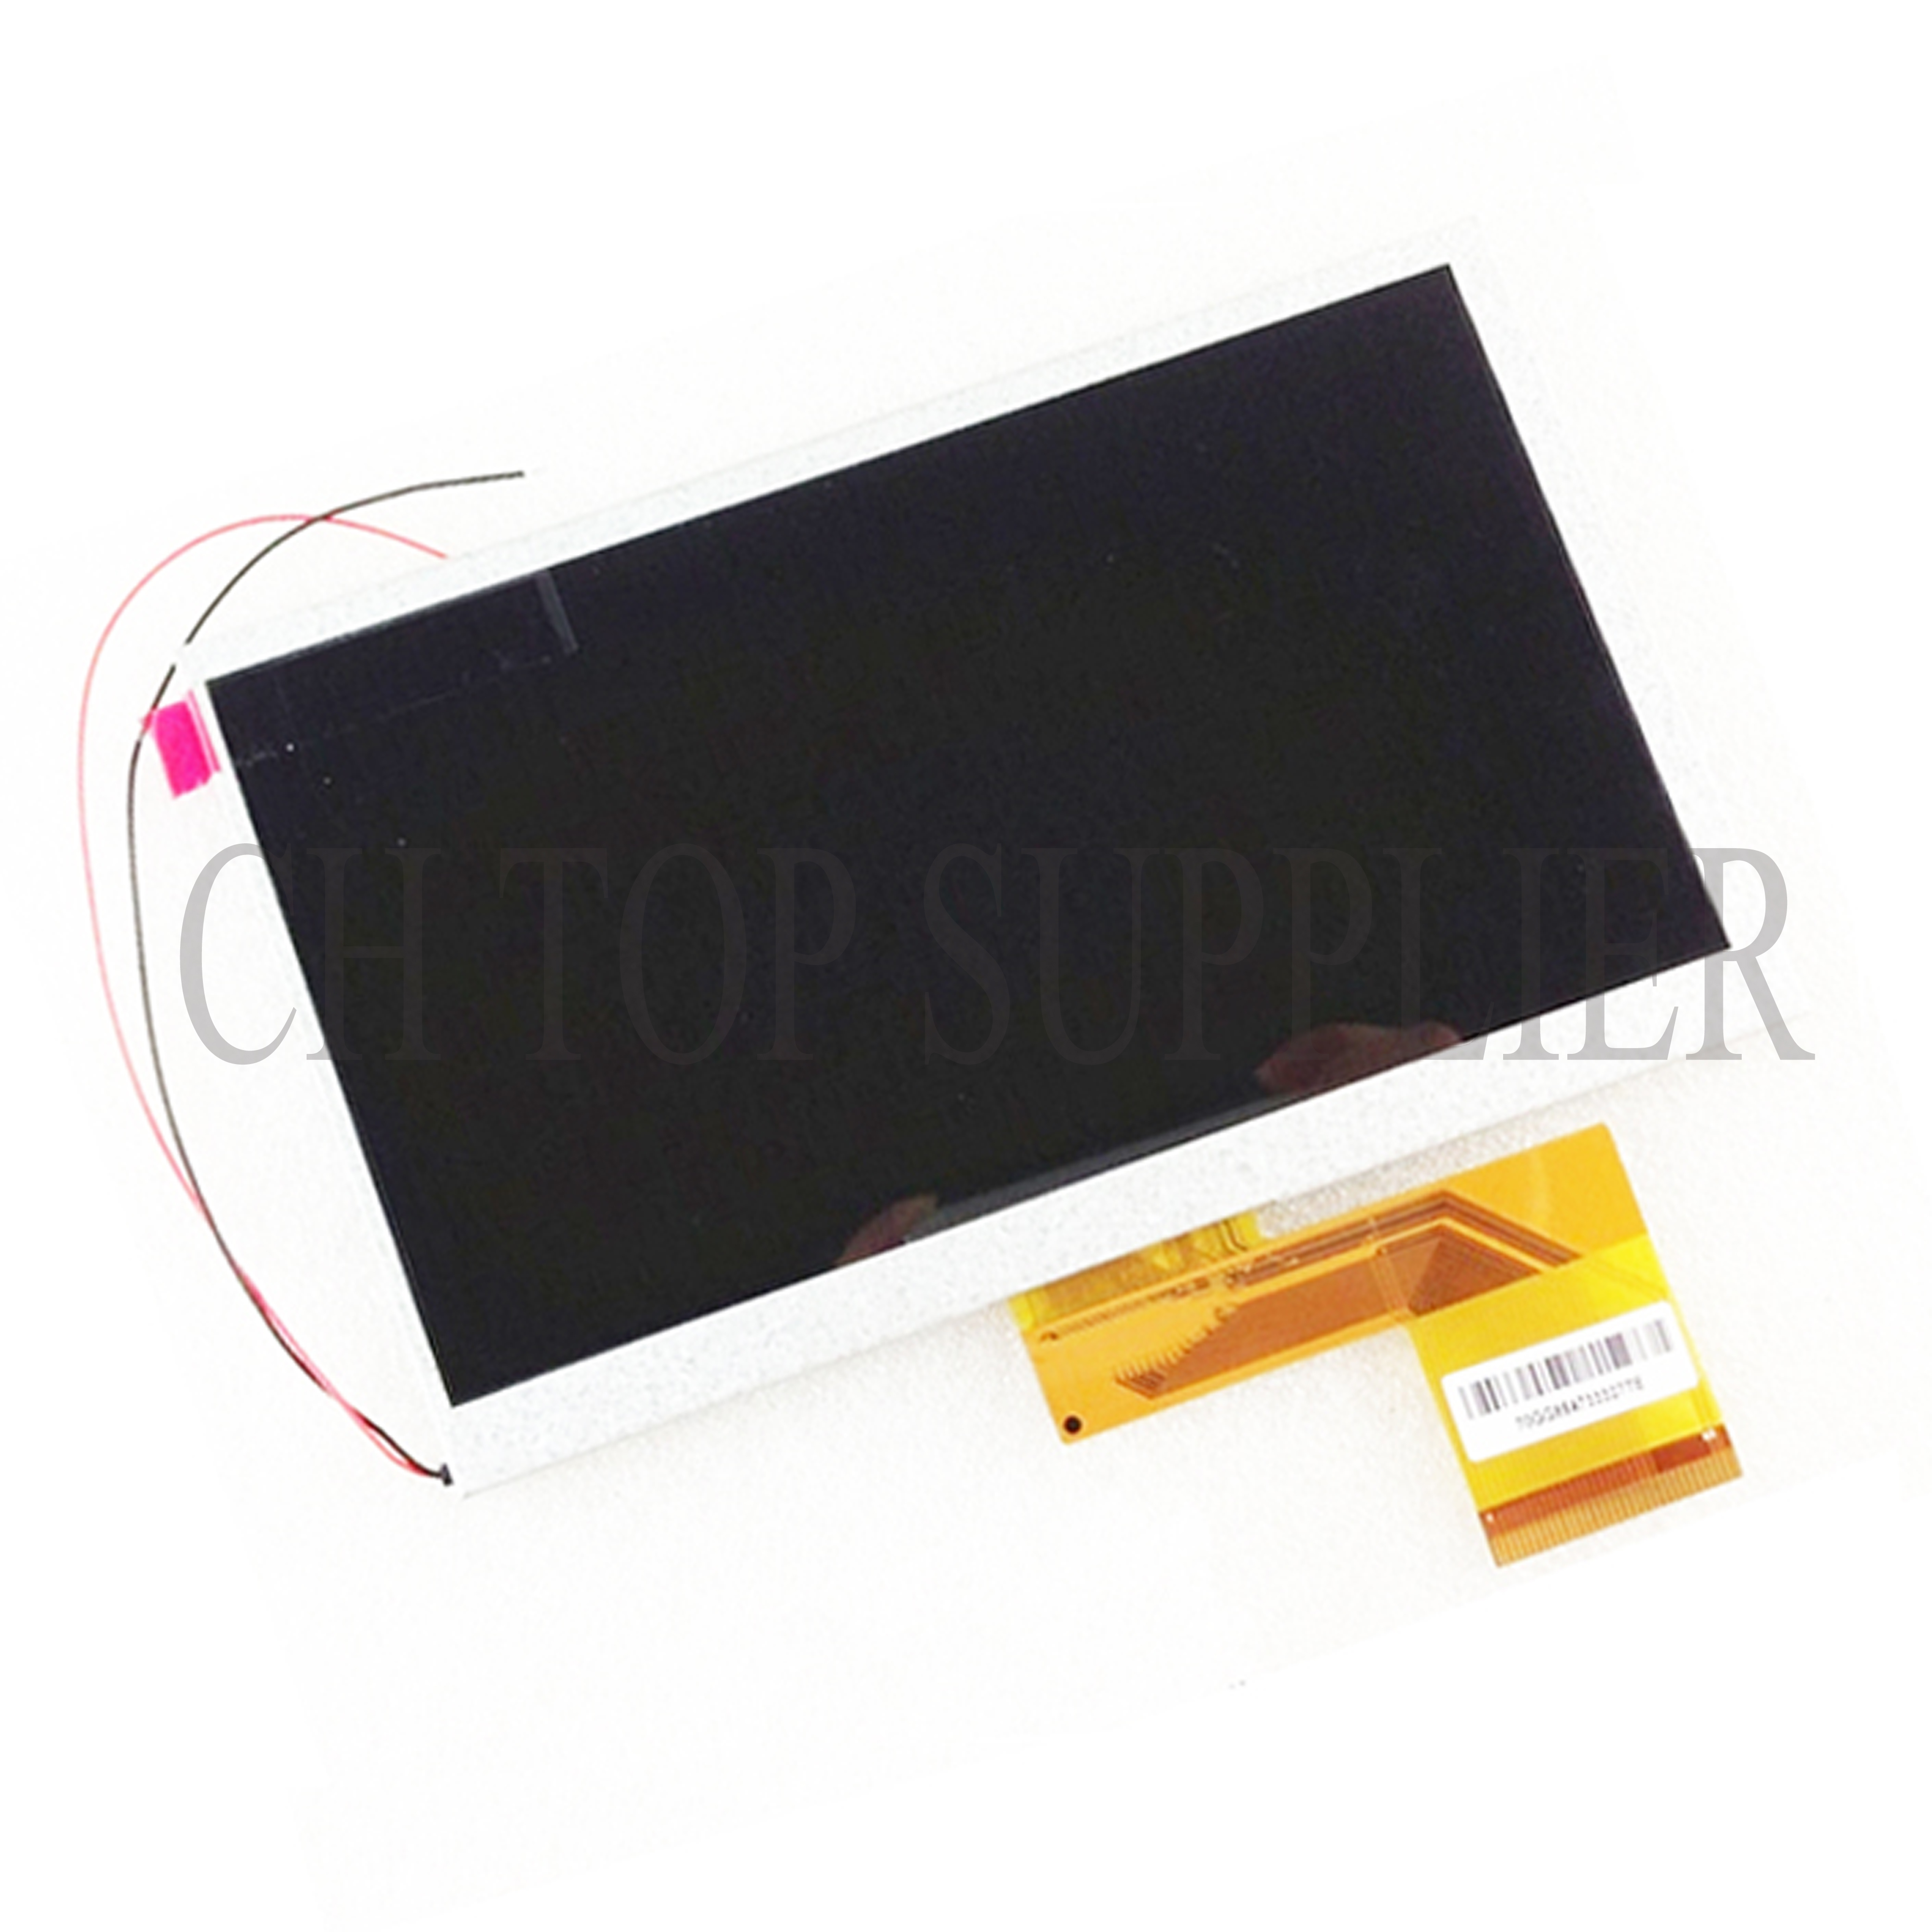 New LCD Display 7 TurboKids S4 Turbopad Tablet 1024X600 inner LCD screen panel Matrix Module Replacement Free Shipping new 7 inch replacement lcd display screen for oysters t72ms 3g 1024 600 tablet pc free shipping